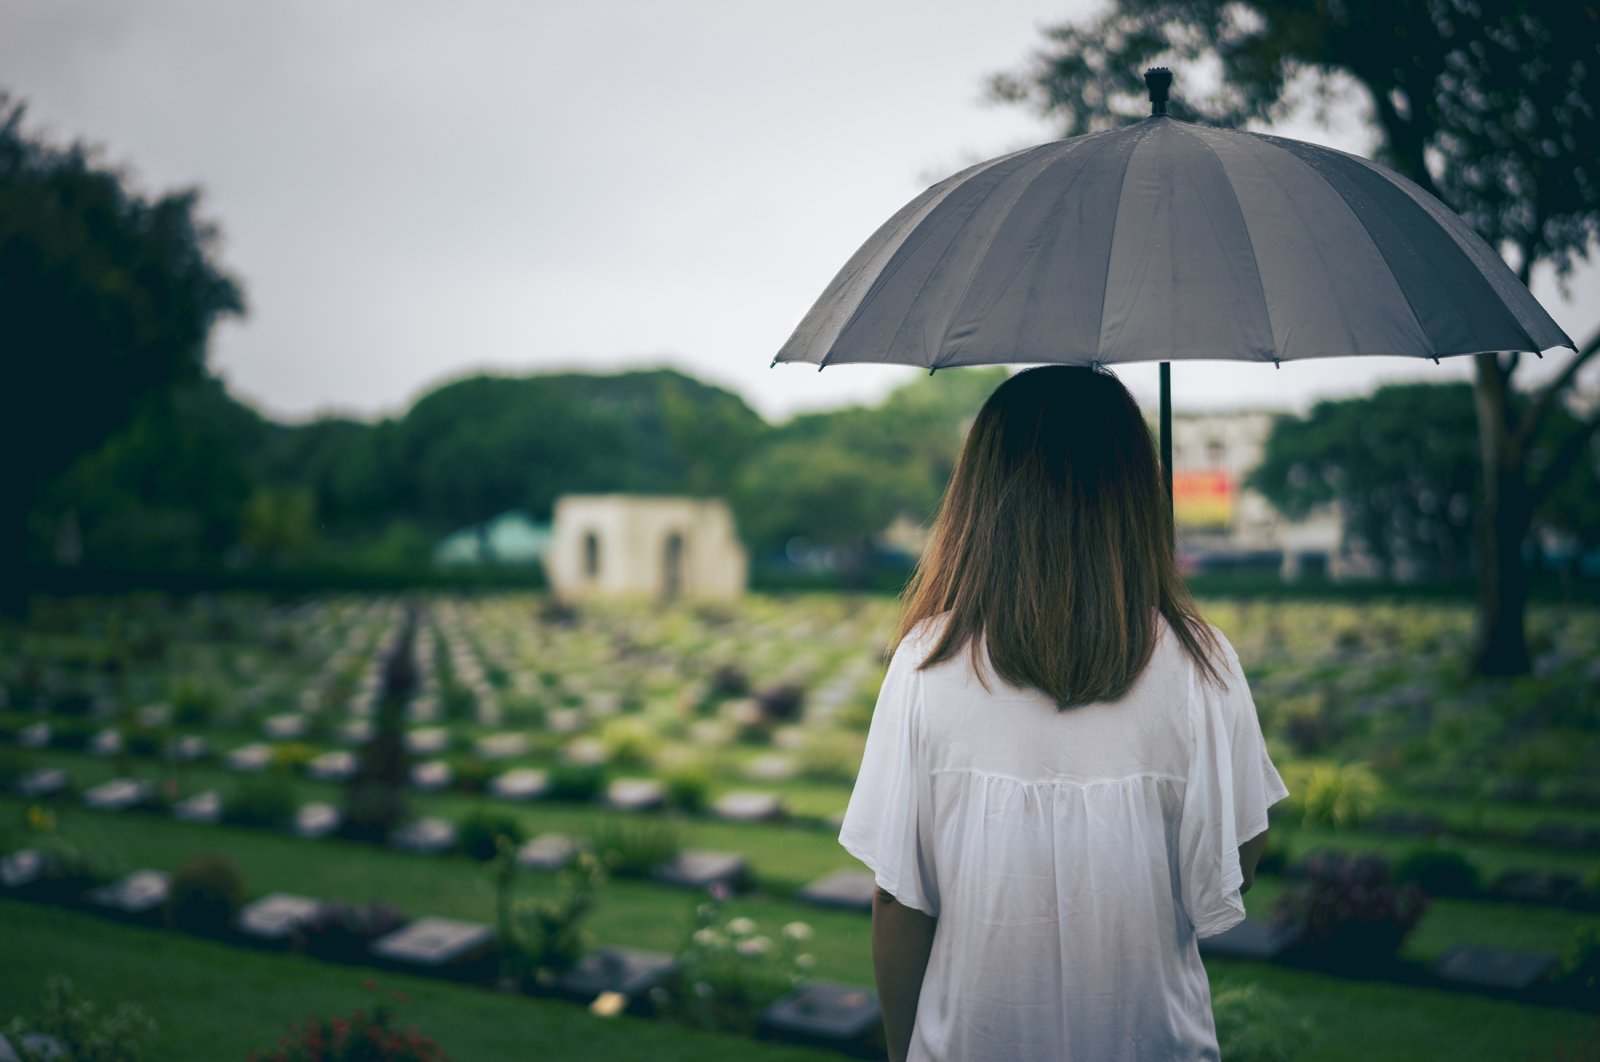 A young woman holds a black umbrella while mourning at a cemetery. (Shutterstock Photo)